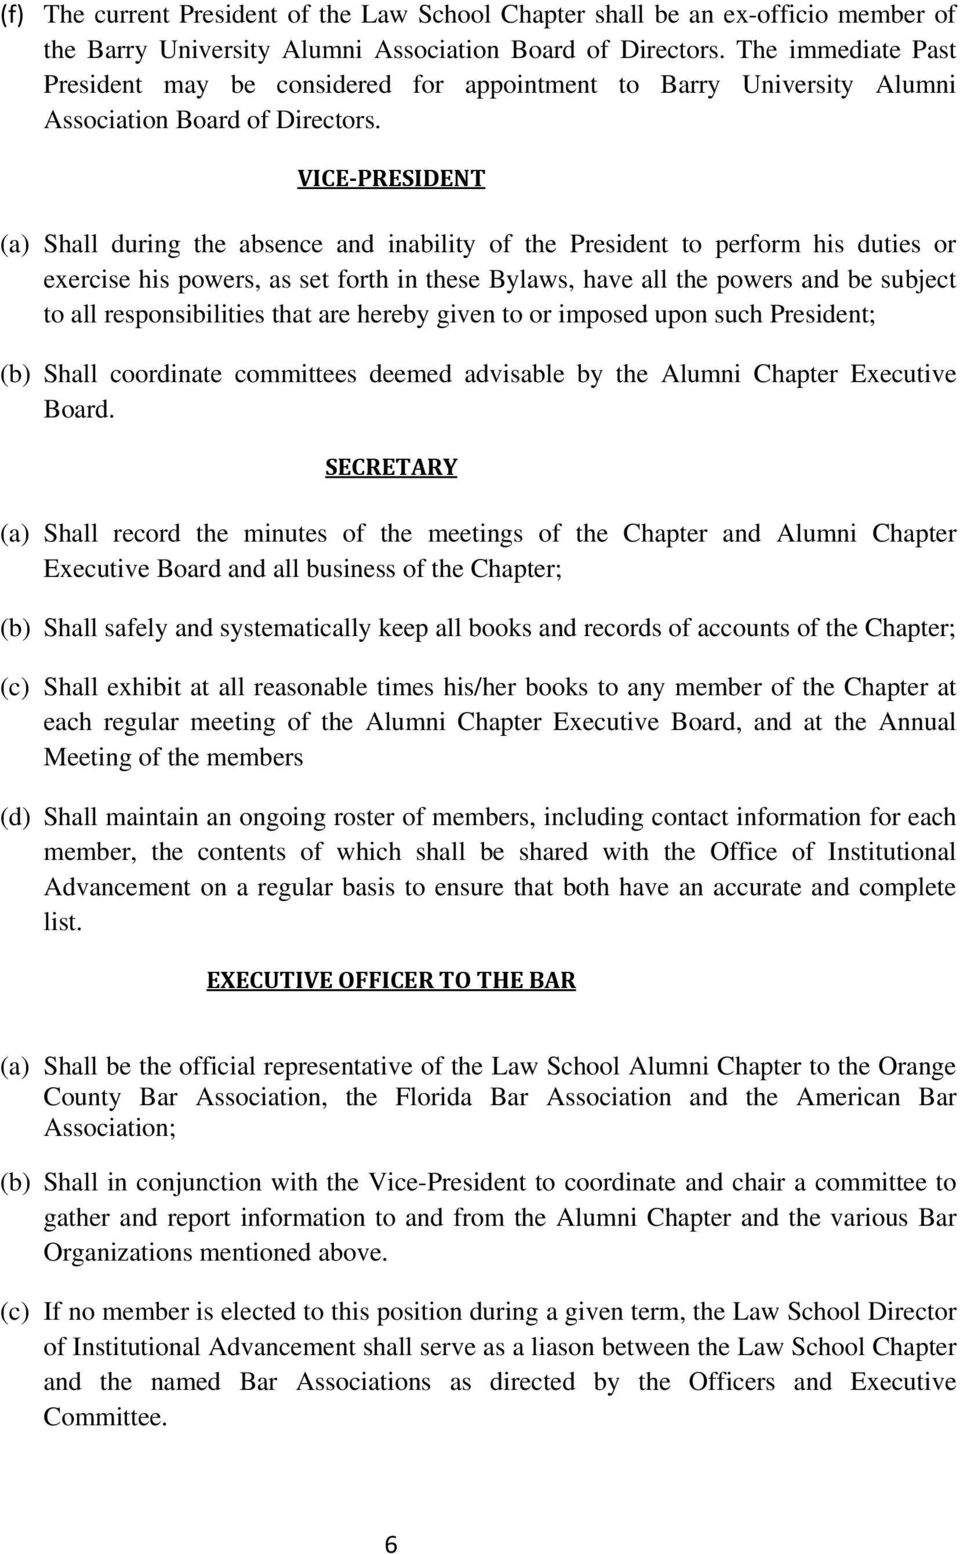 VICE PRESIDENT (a) Shall during the absence and inability of the President to perform his duties or exercise his powers, as set forth in these Bylaws, have all the powers and be subject to all